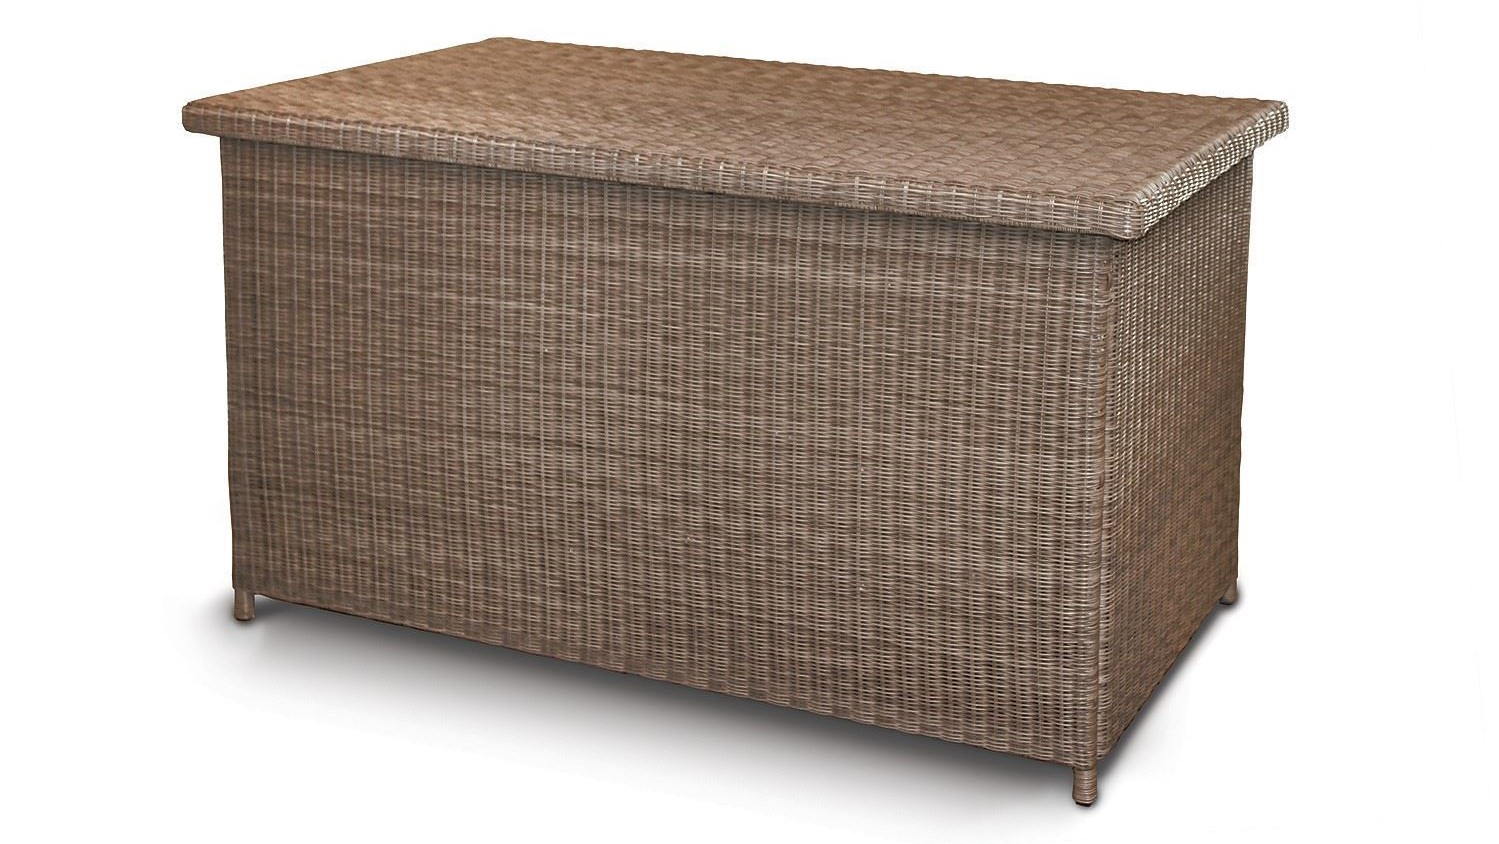 Kettler Palma Large Cushion Box - Rattan | Local Delivery Only